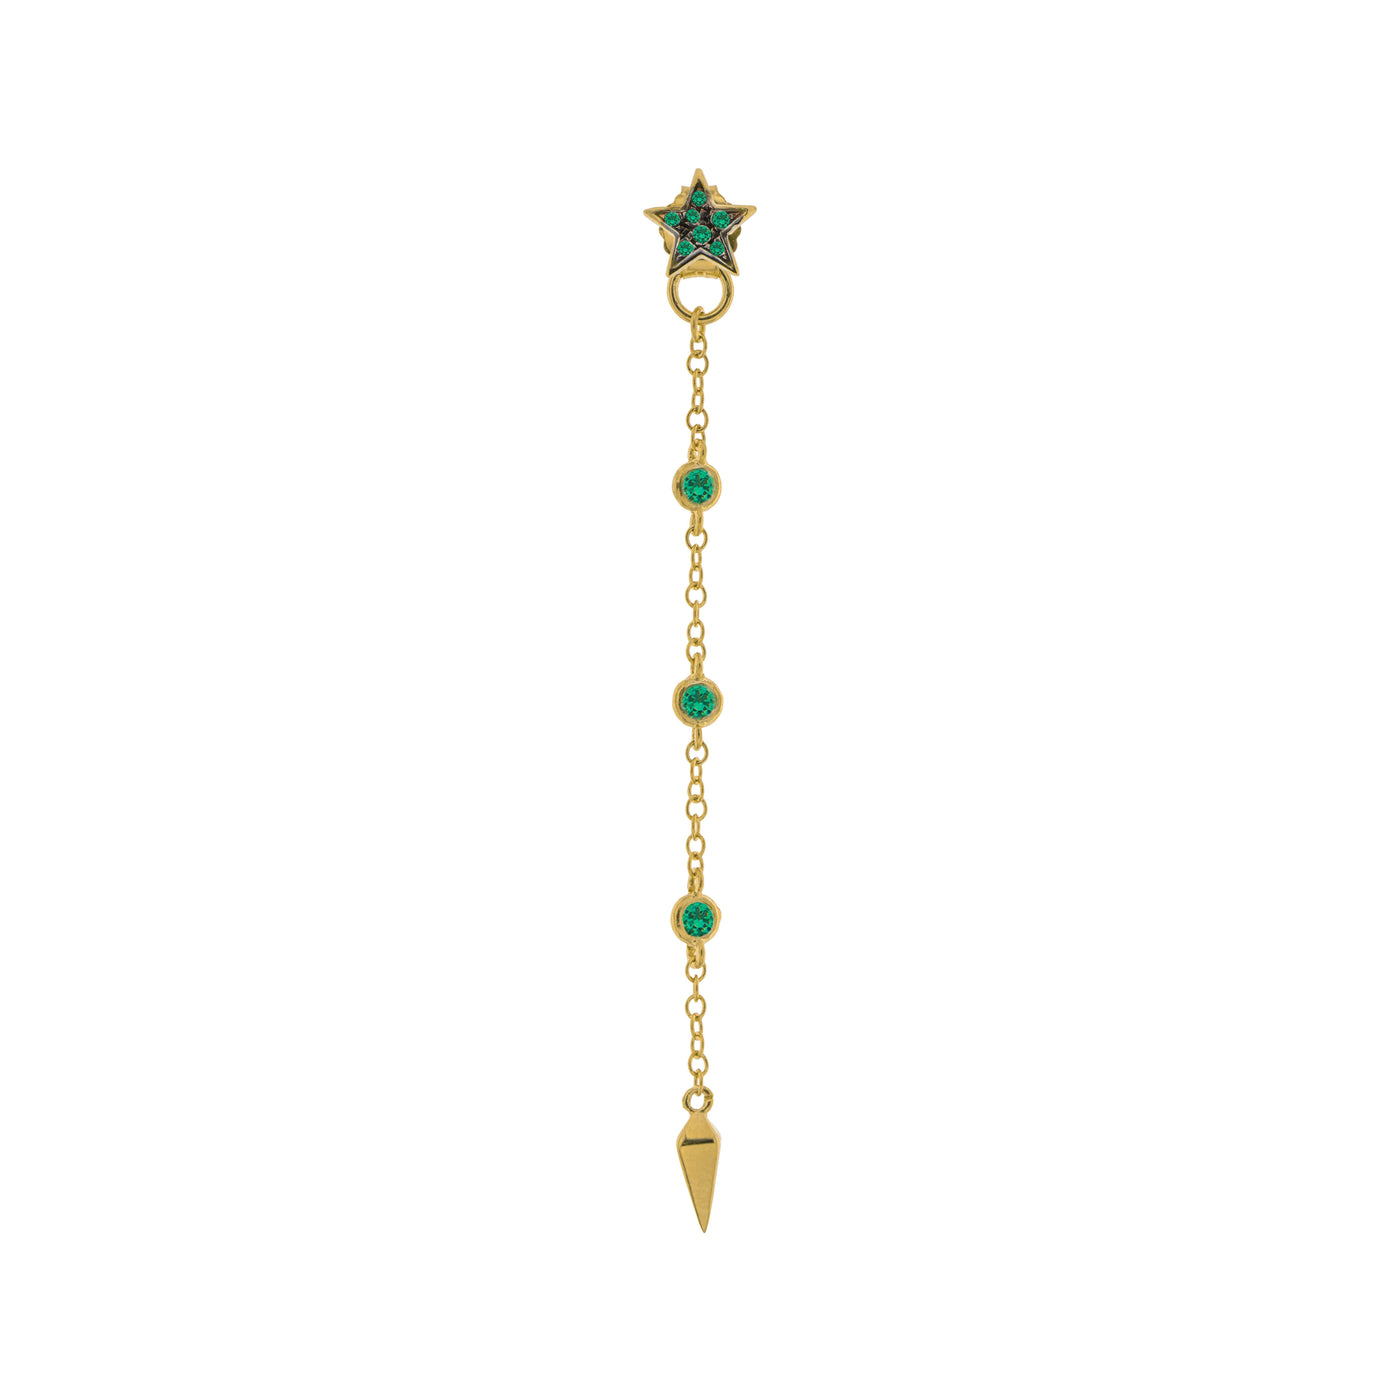 Earrings - Mono Earring with Chain and Lance Green Zircons - 2 | Rue des Mille